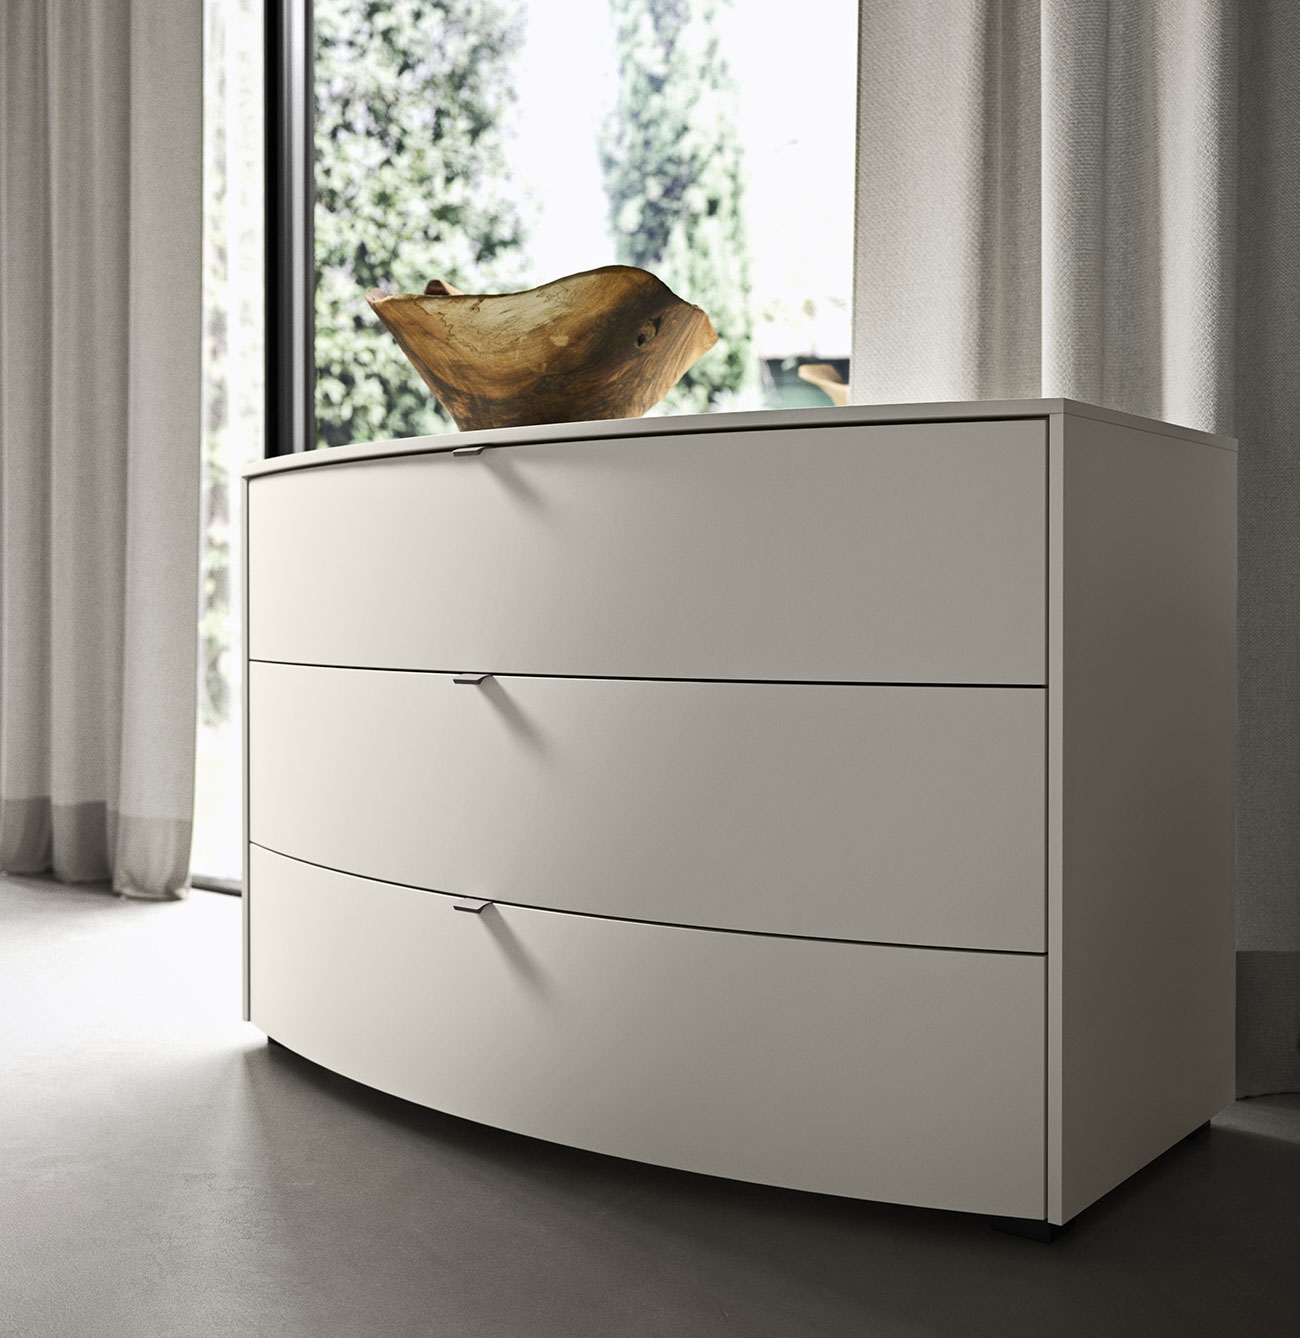 classy drawer units, bedsides and chests of drawers